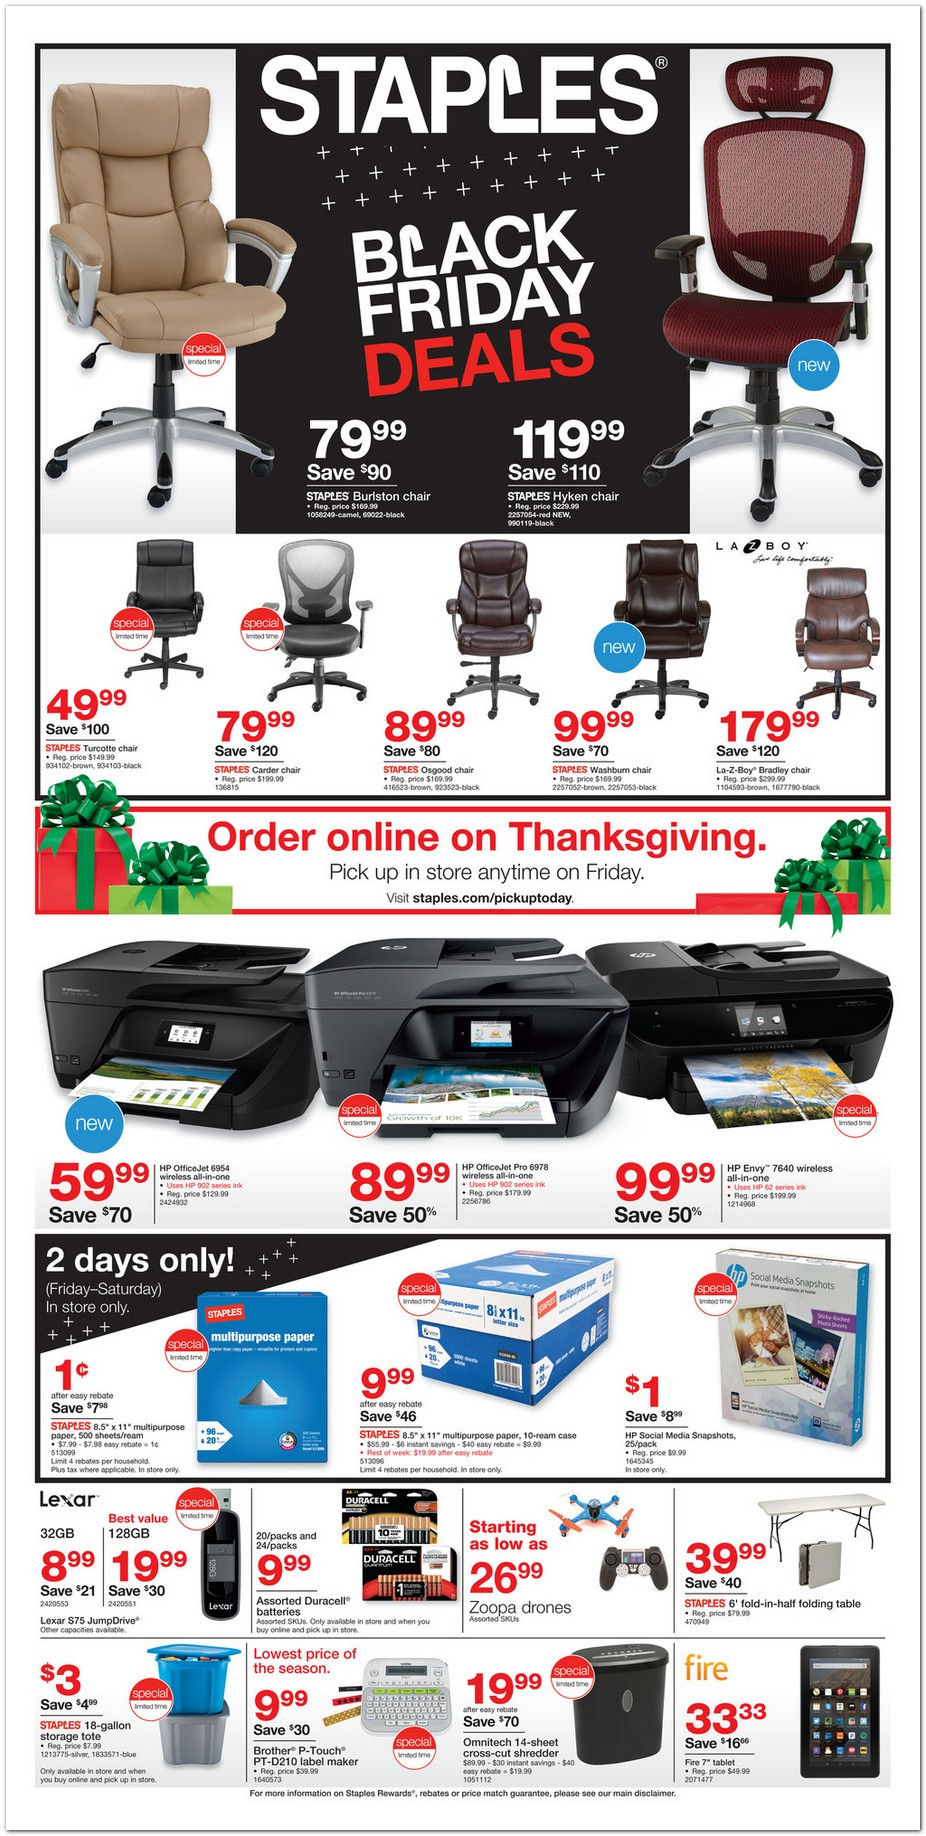 staples-black-friday-2016-ad-scan-p00004